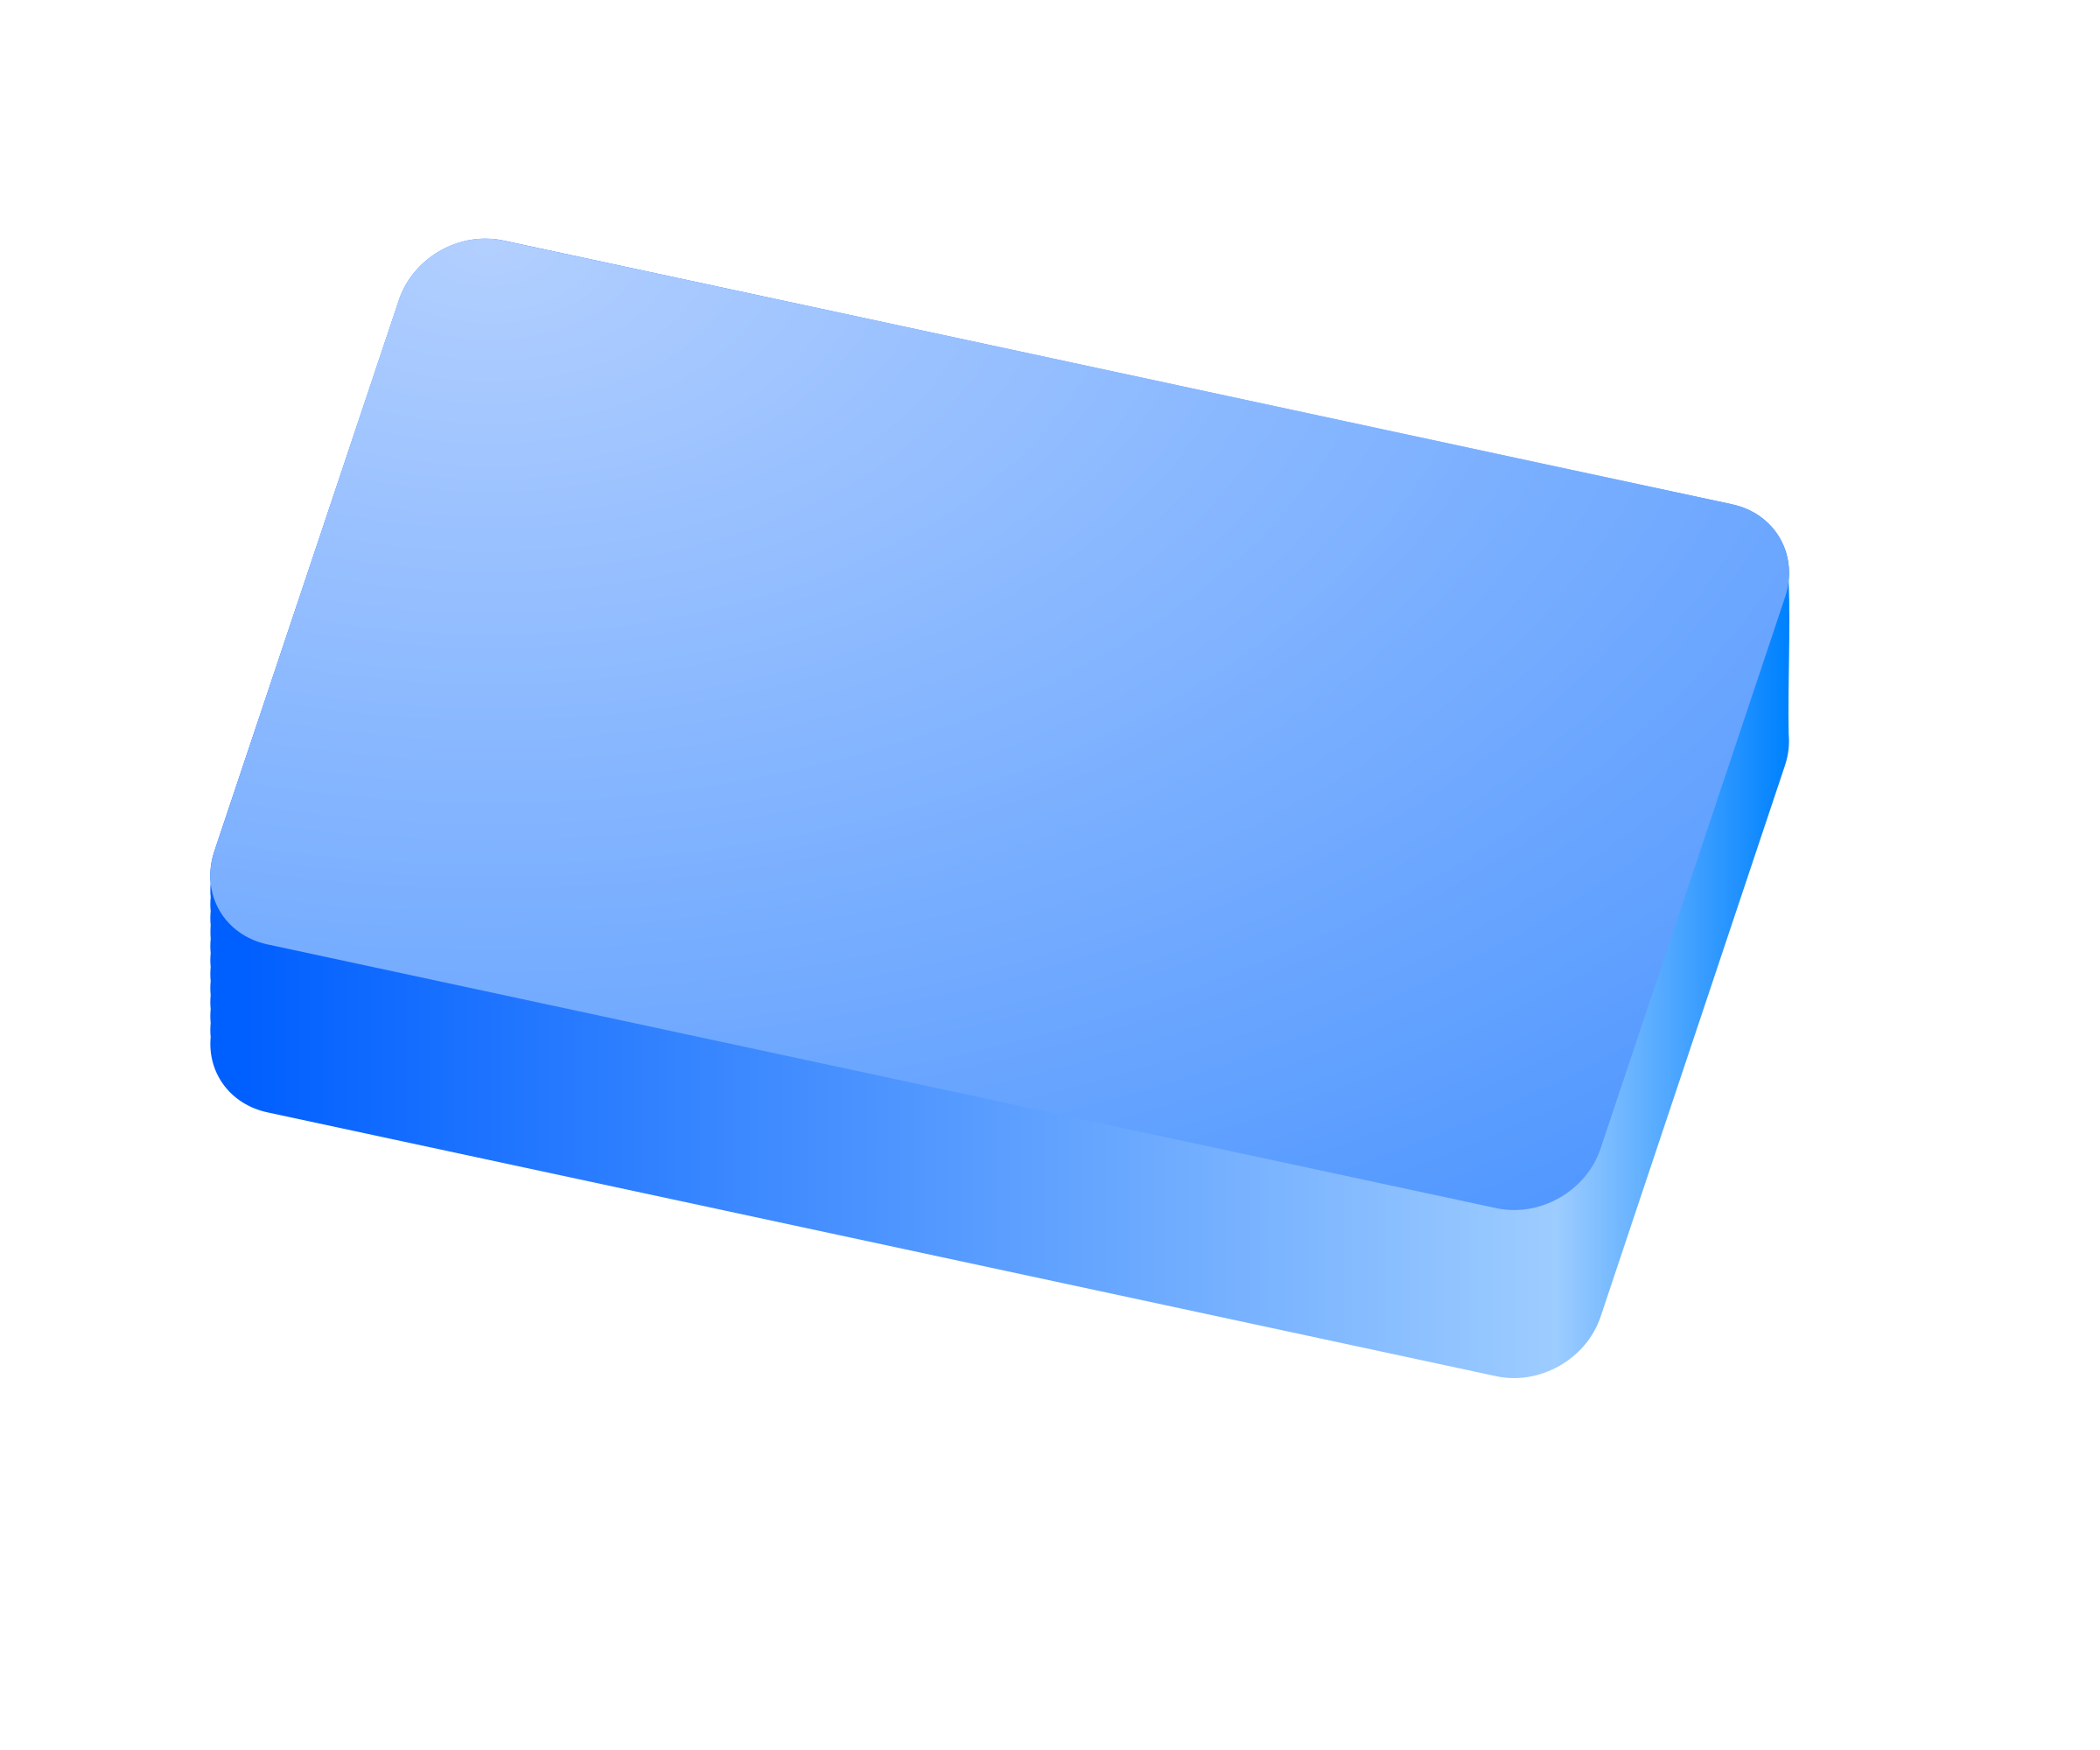 Icons png free and. Soap clipart blue soap